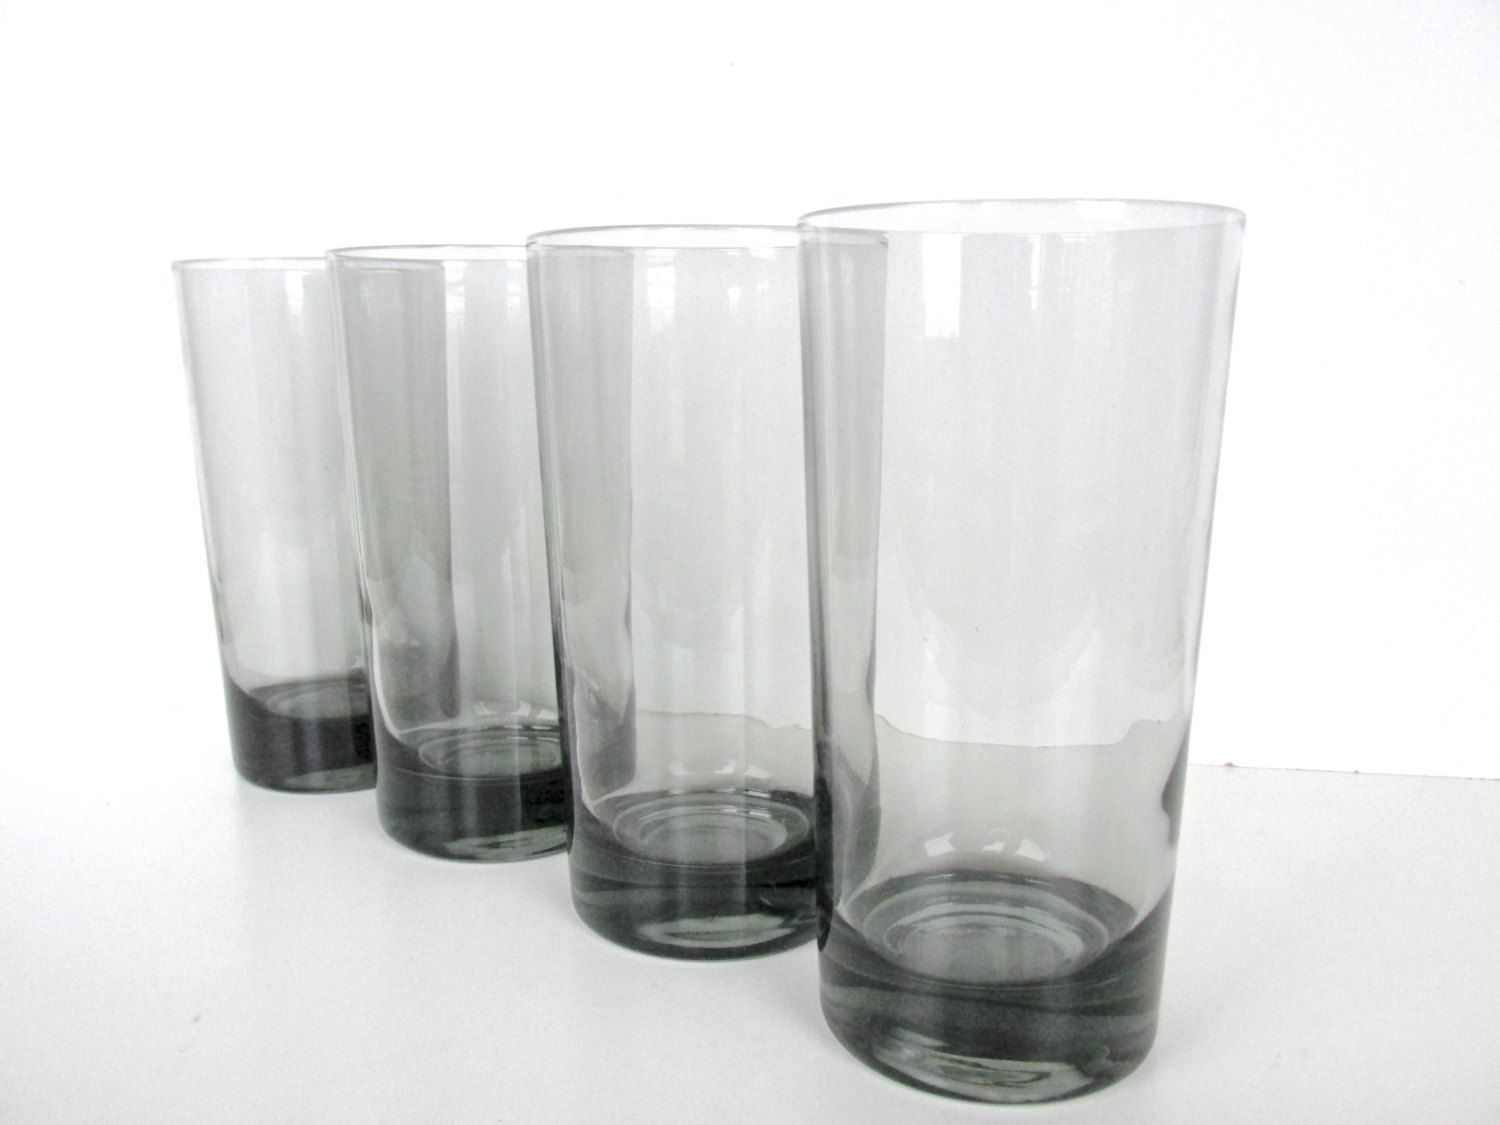 Mid Century Modern Smoked Glass Tumblers Smokey Grey Highball Glasses Set Of 4 Modern Drink Glasse Modern Drinking Glasses Vintage Glassware Drinking Glasses